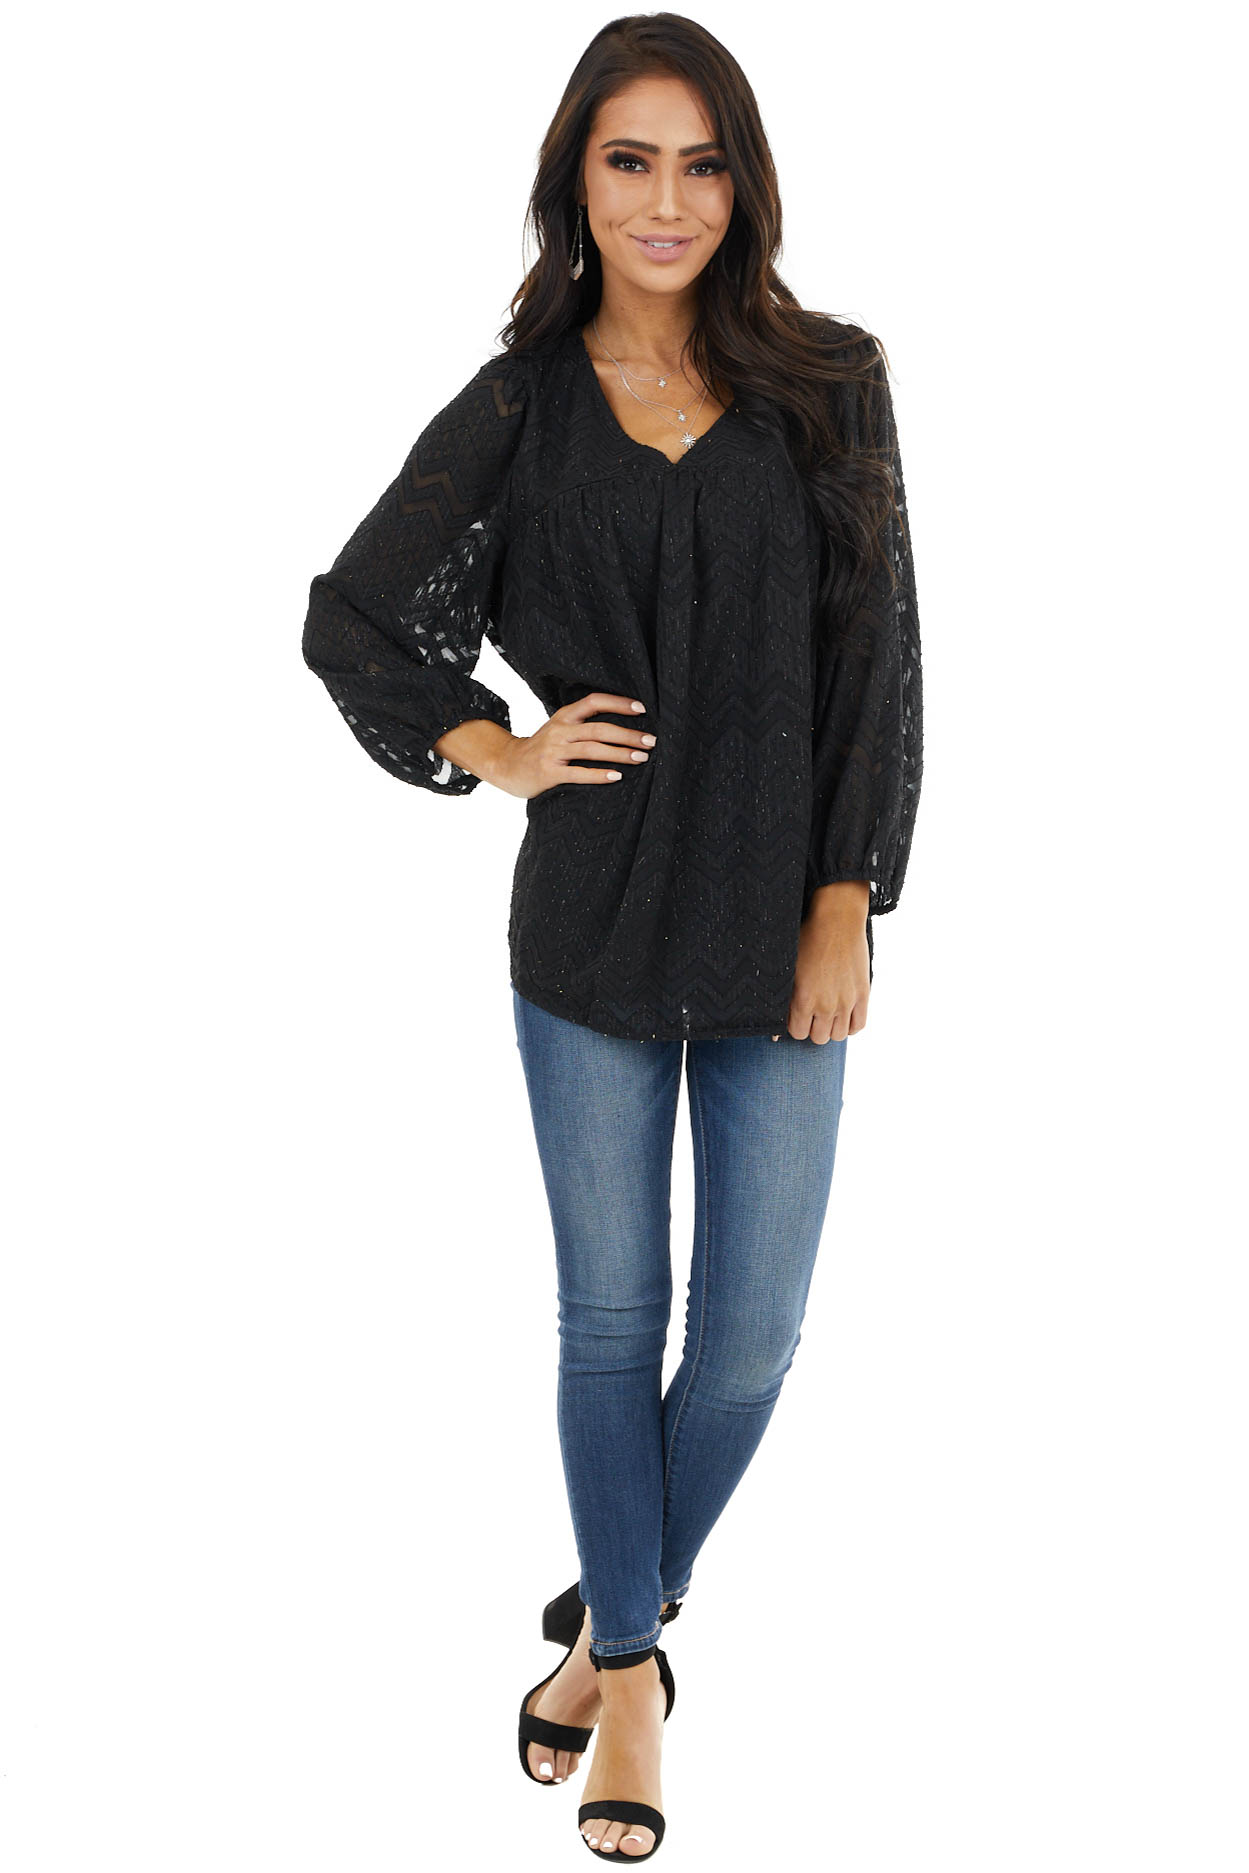 Black Lace Chevron Pattern Blouse with Bubble Sleeves